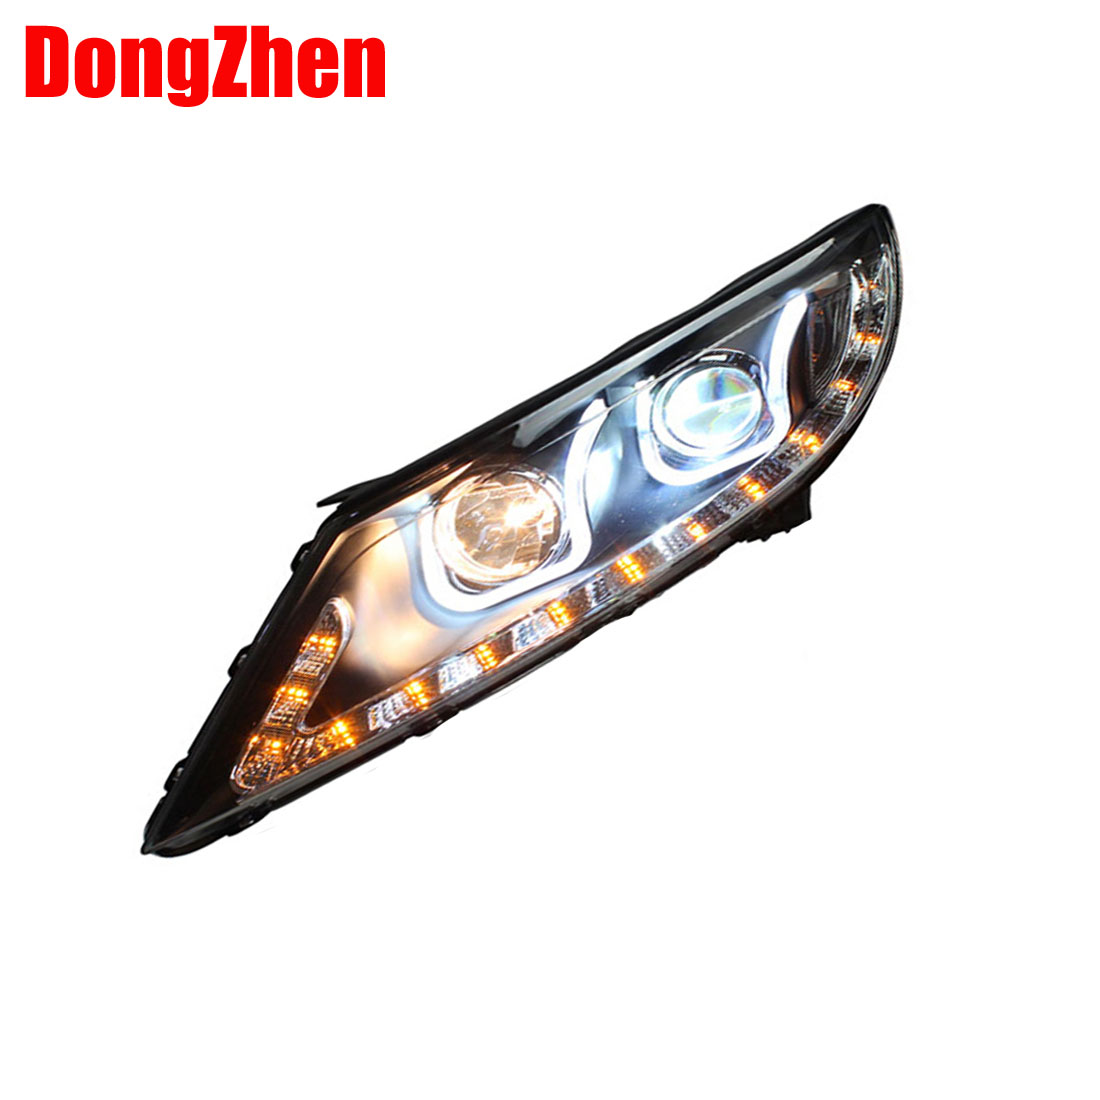 DongZhen Bi-Xenon Replacement Projector Headlights Headlamps with ANGEL EYES AND LED DRL HID For  KIA SPORTAGE R 2010~2014<br><br>Aliexpress